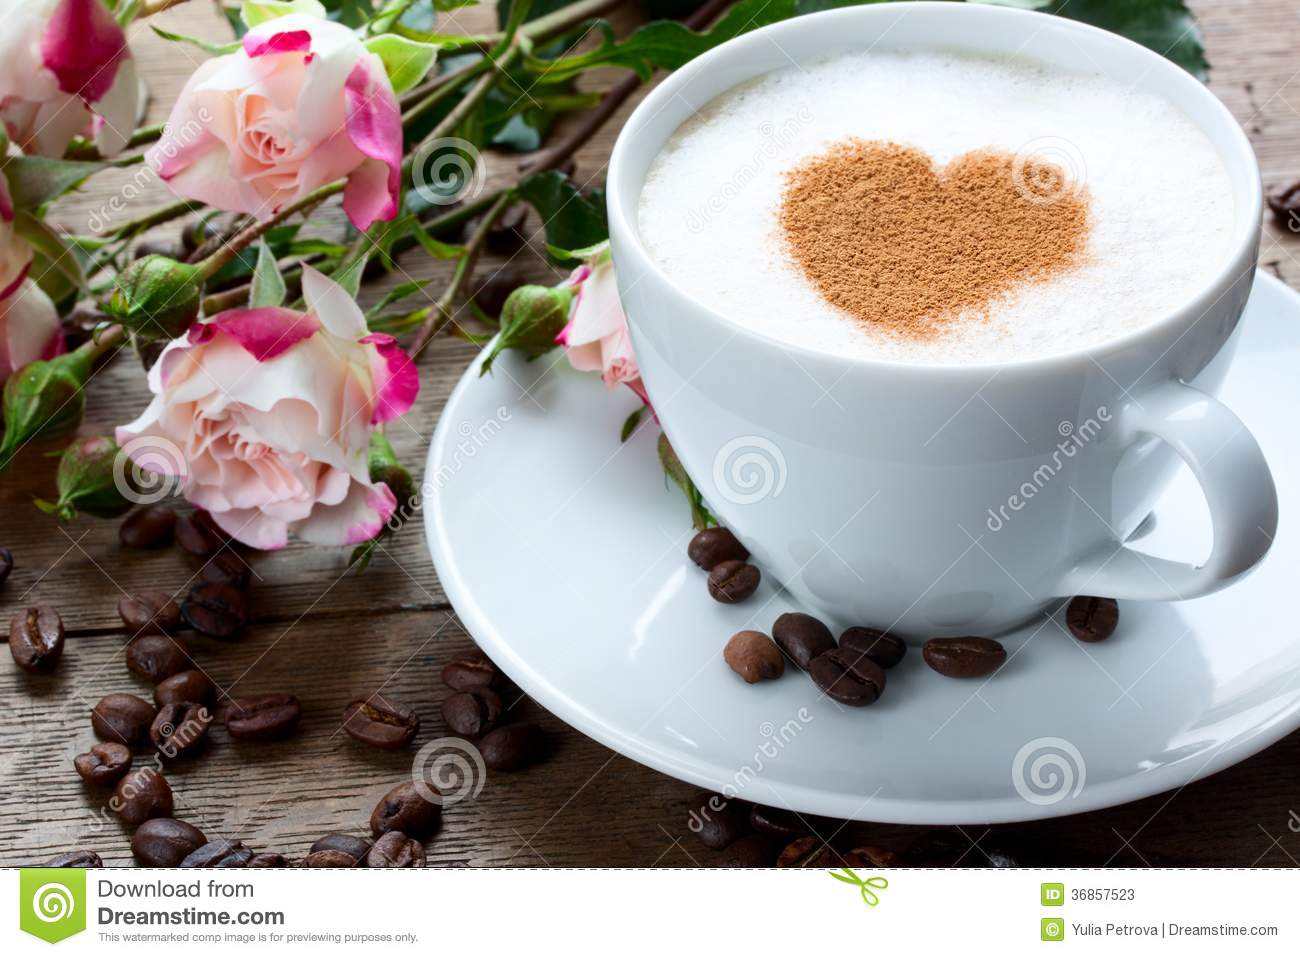 Mr. Coffee. Jarden Corporation is a leading provider of consumer products marketed under many respected and well known brand names; Sunbeam?, a Jarden subsidiary, has been producing electric home appliances since